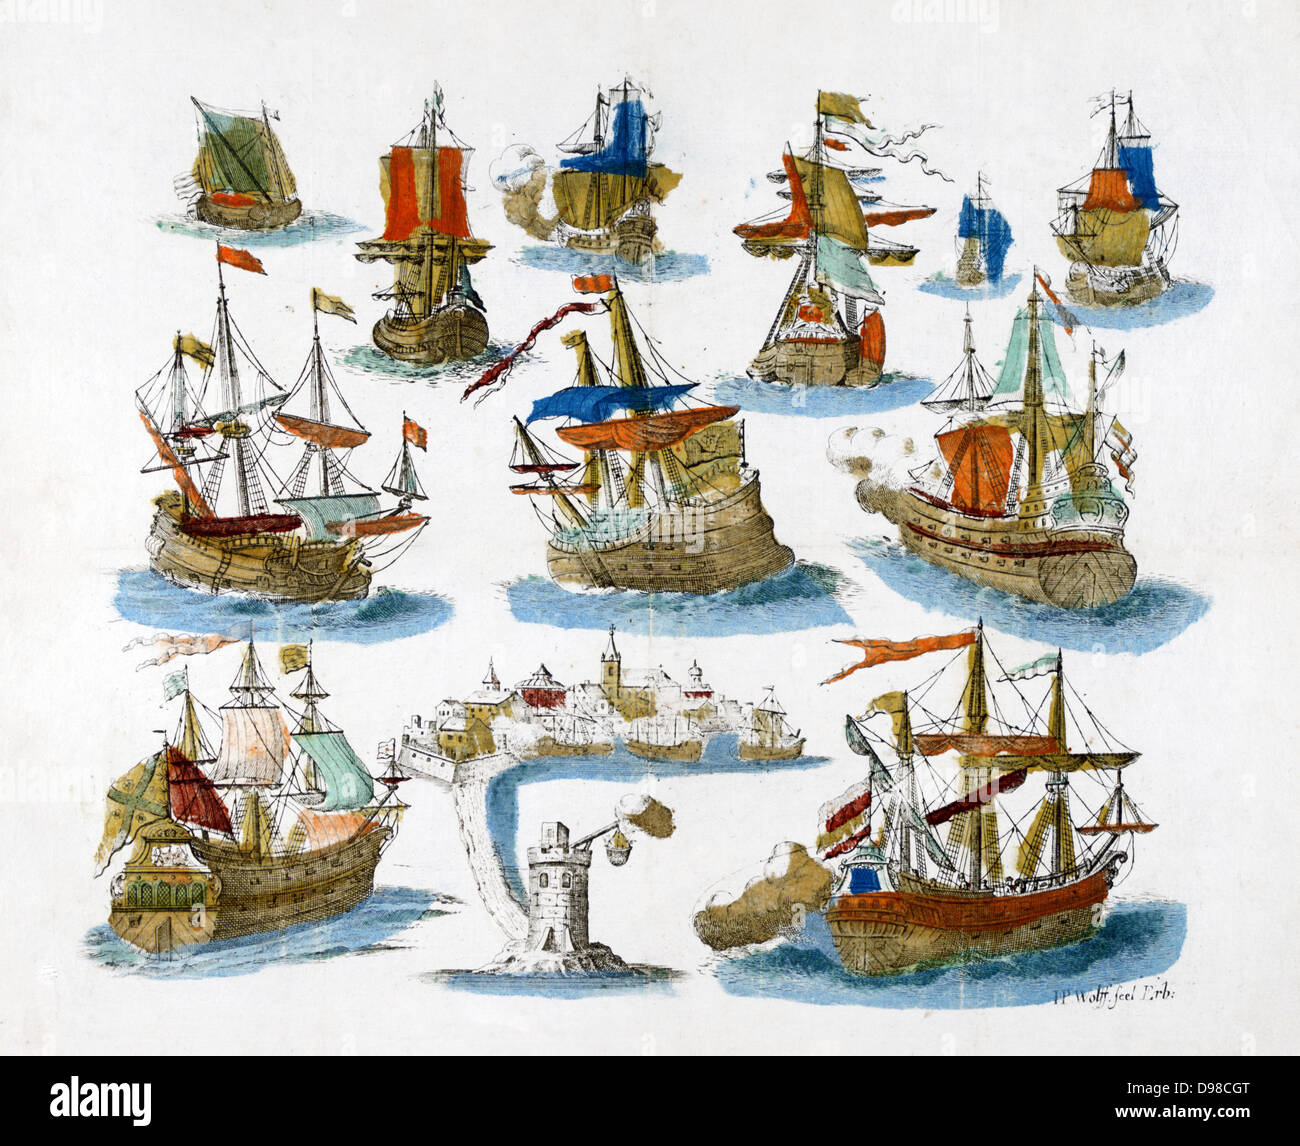 Popular Eighteenth century print of various sailing vessels. - Stock Image